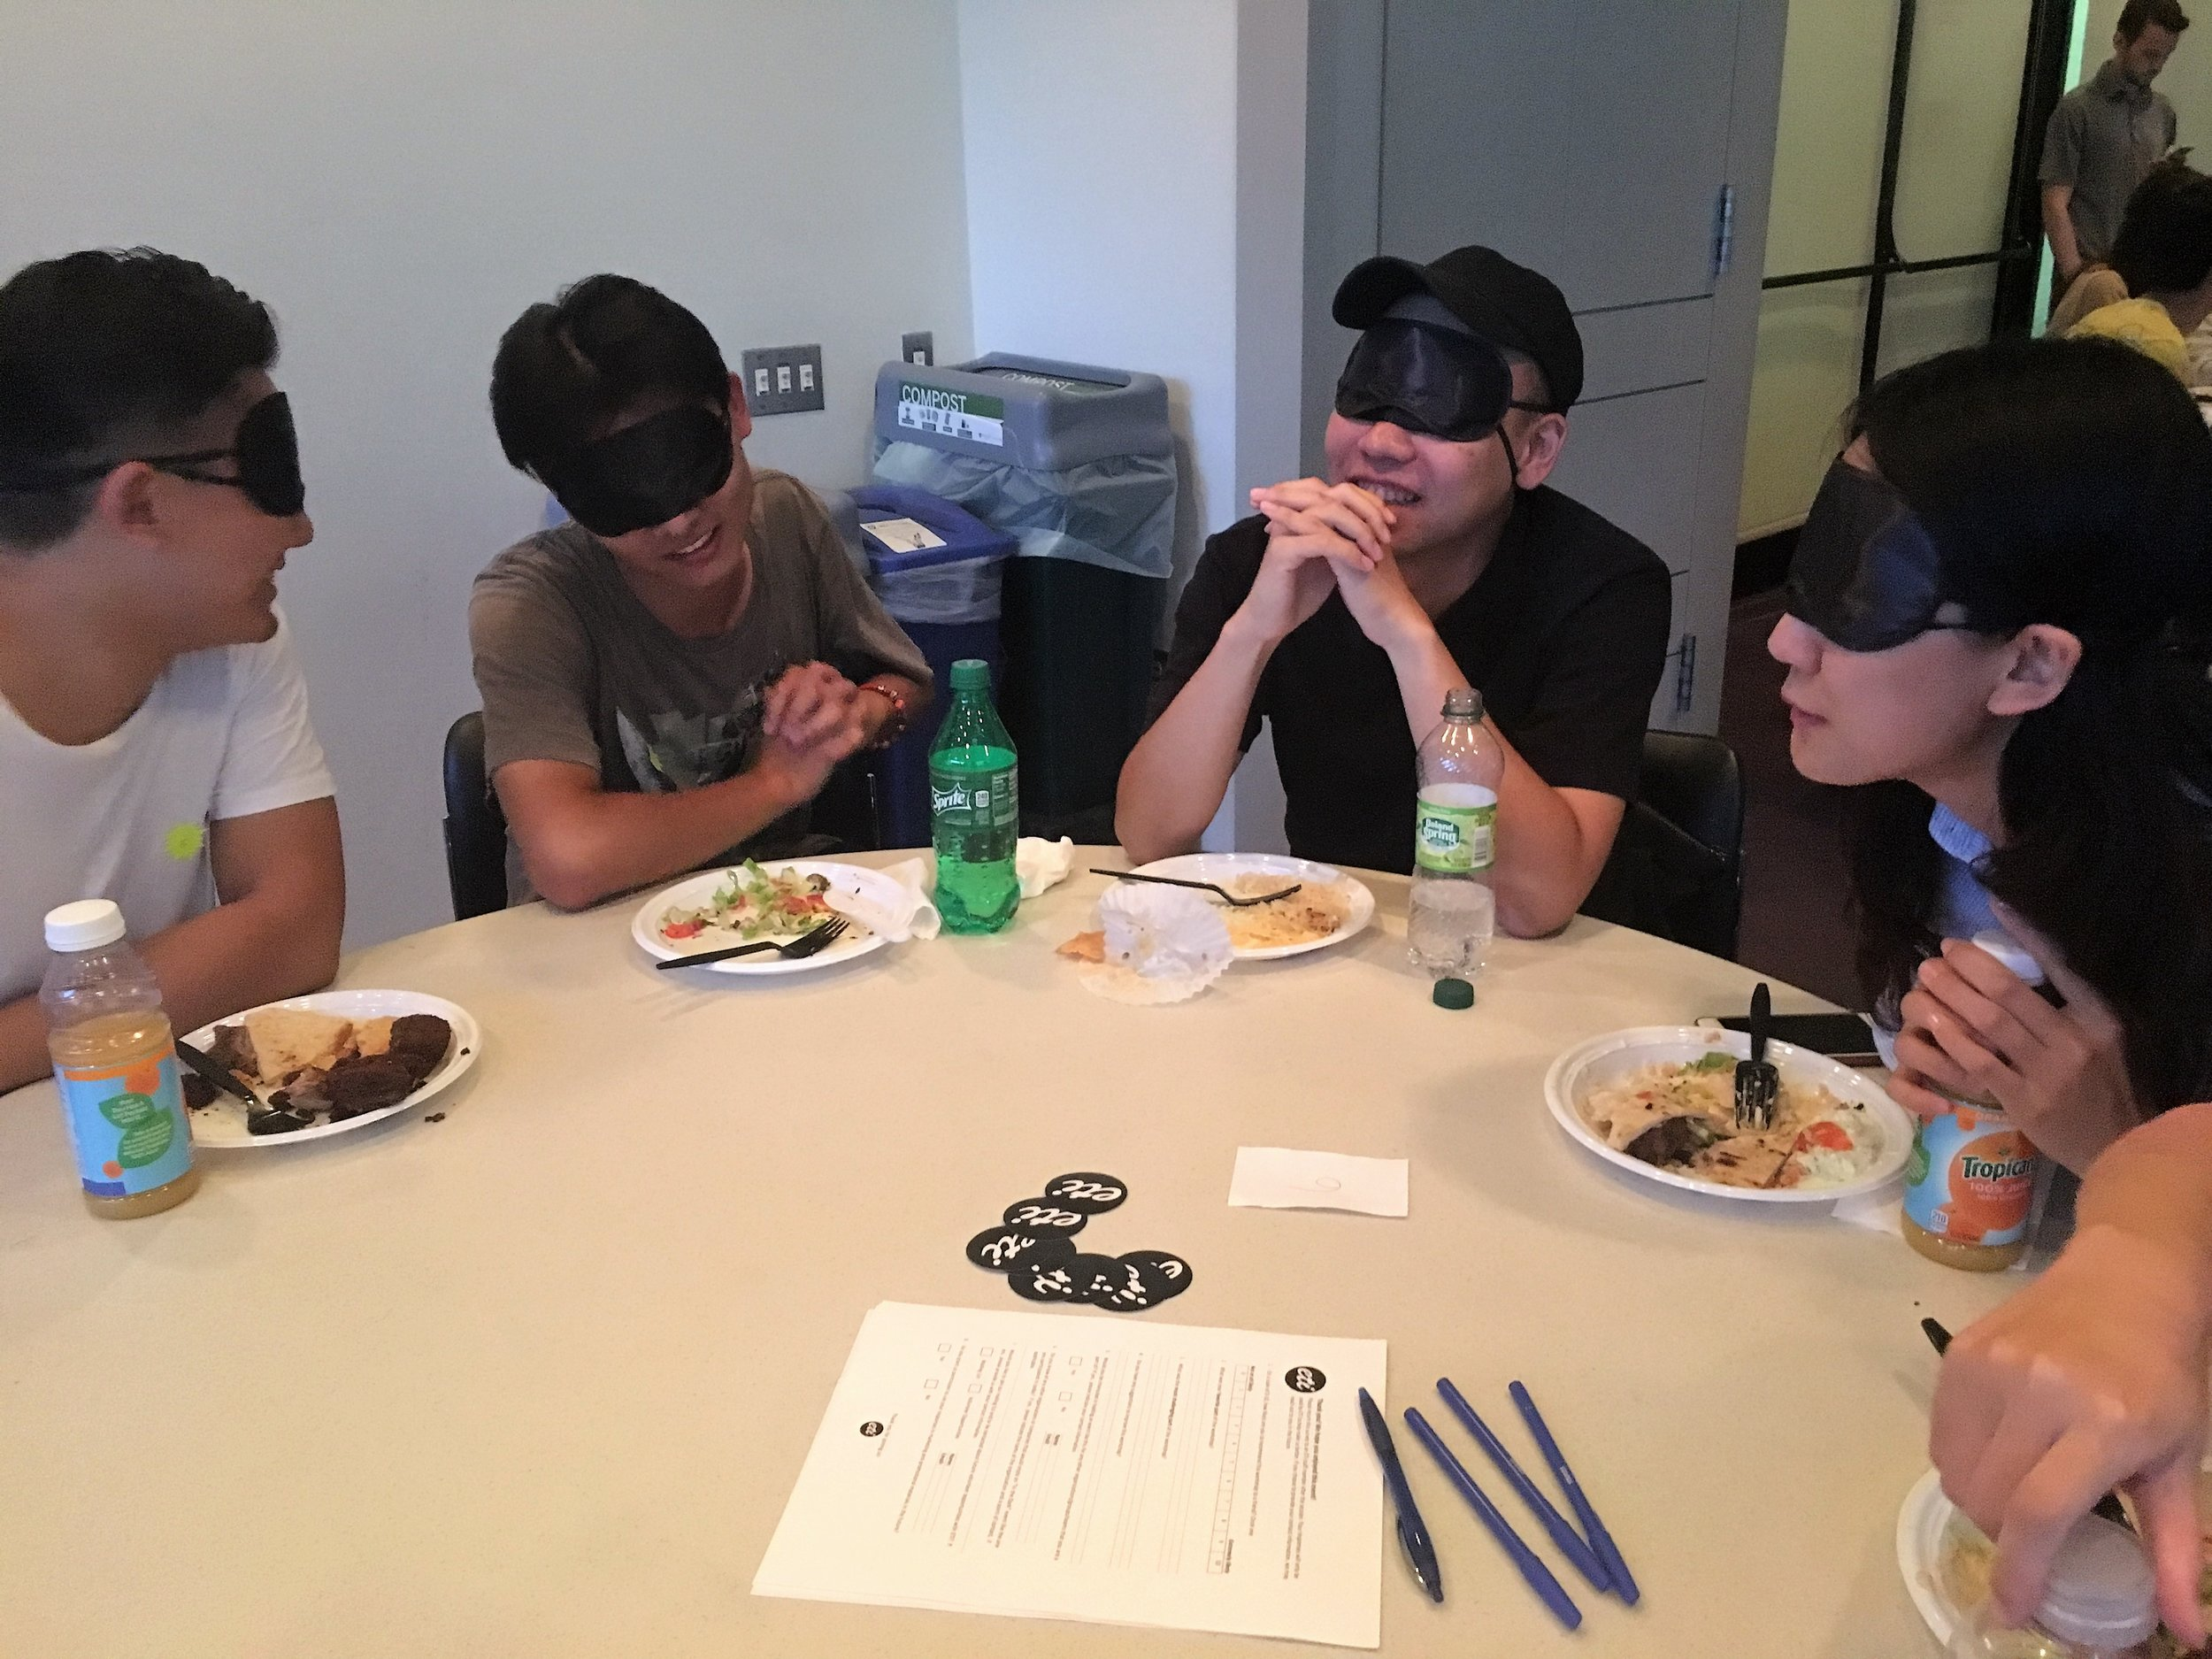 Four blindfolded participants sit at a round table, laughing and talking with plates of food in front of them.